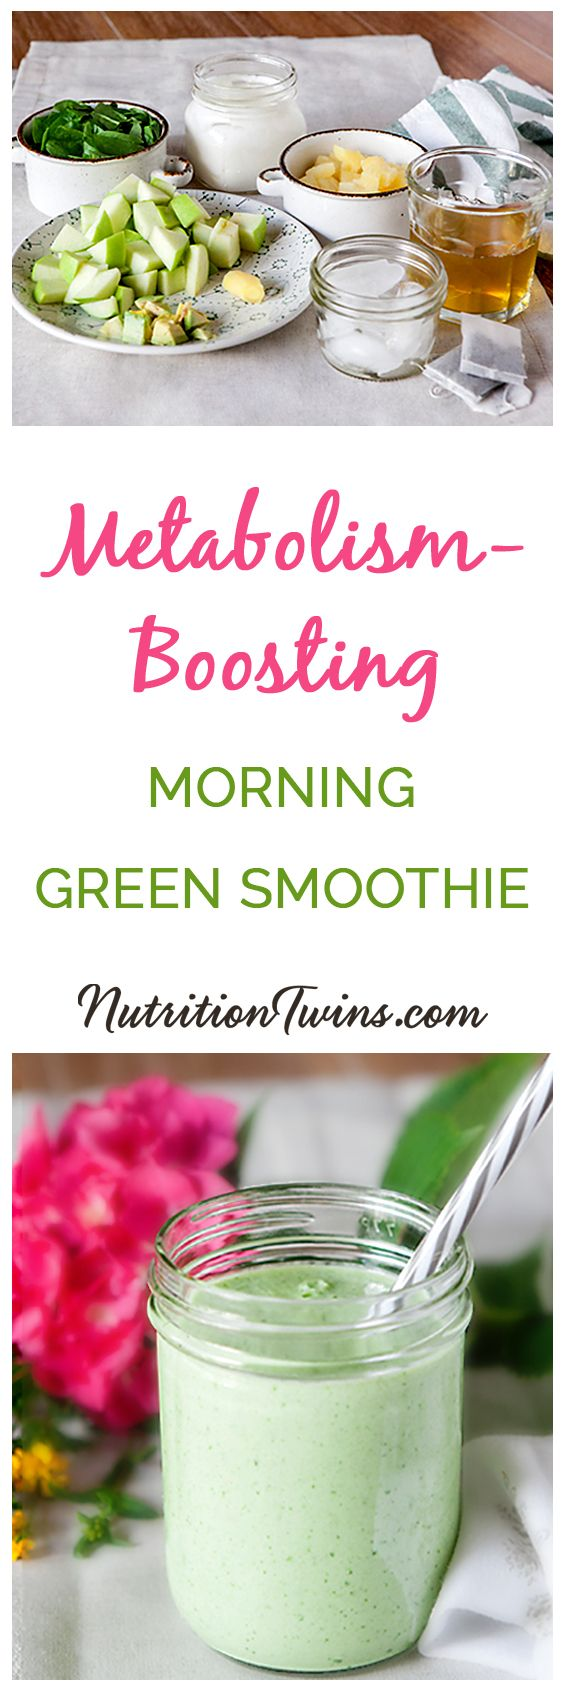 Metabolism Boosting Morning Green Smoothie   Only 207 Calories   Packed with protein, fiber and anti-inflammatories that keep your body in better working order to fuel efficient organs and a well-tuned metabolism   For MORE Nutrition & Fitness Tips & RECIPES please SIGN UP for our FREE NEWSLETTER www.NutritionTwins.com